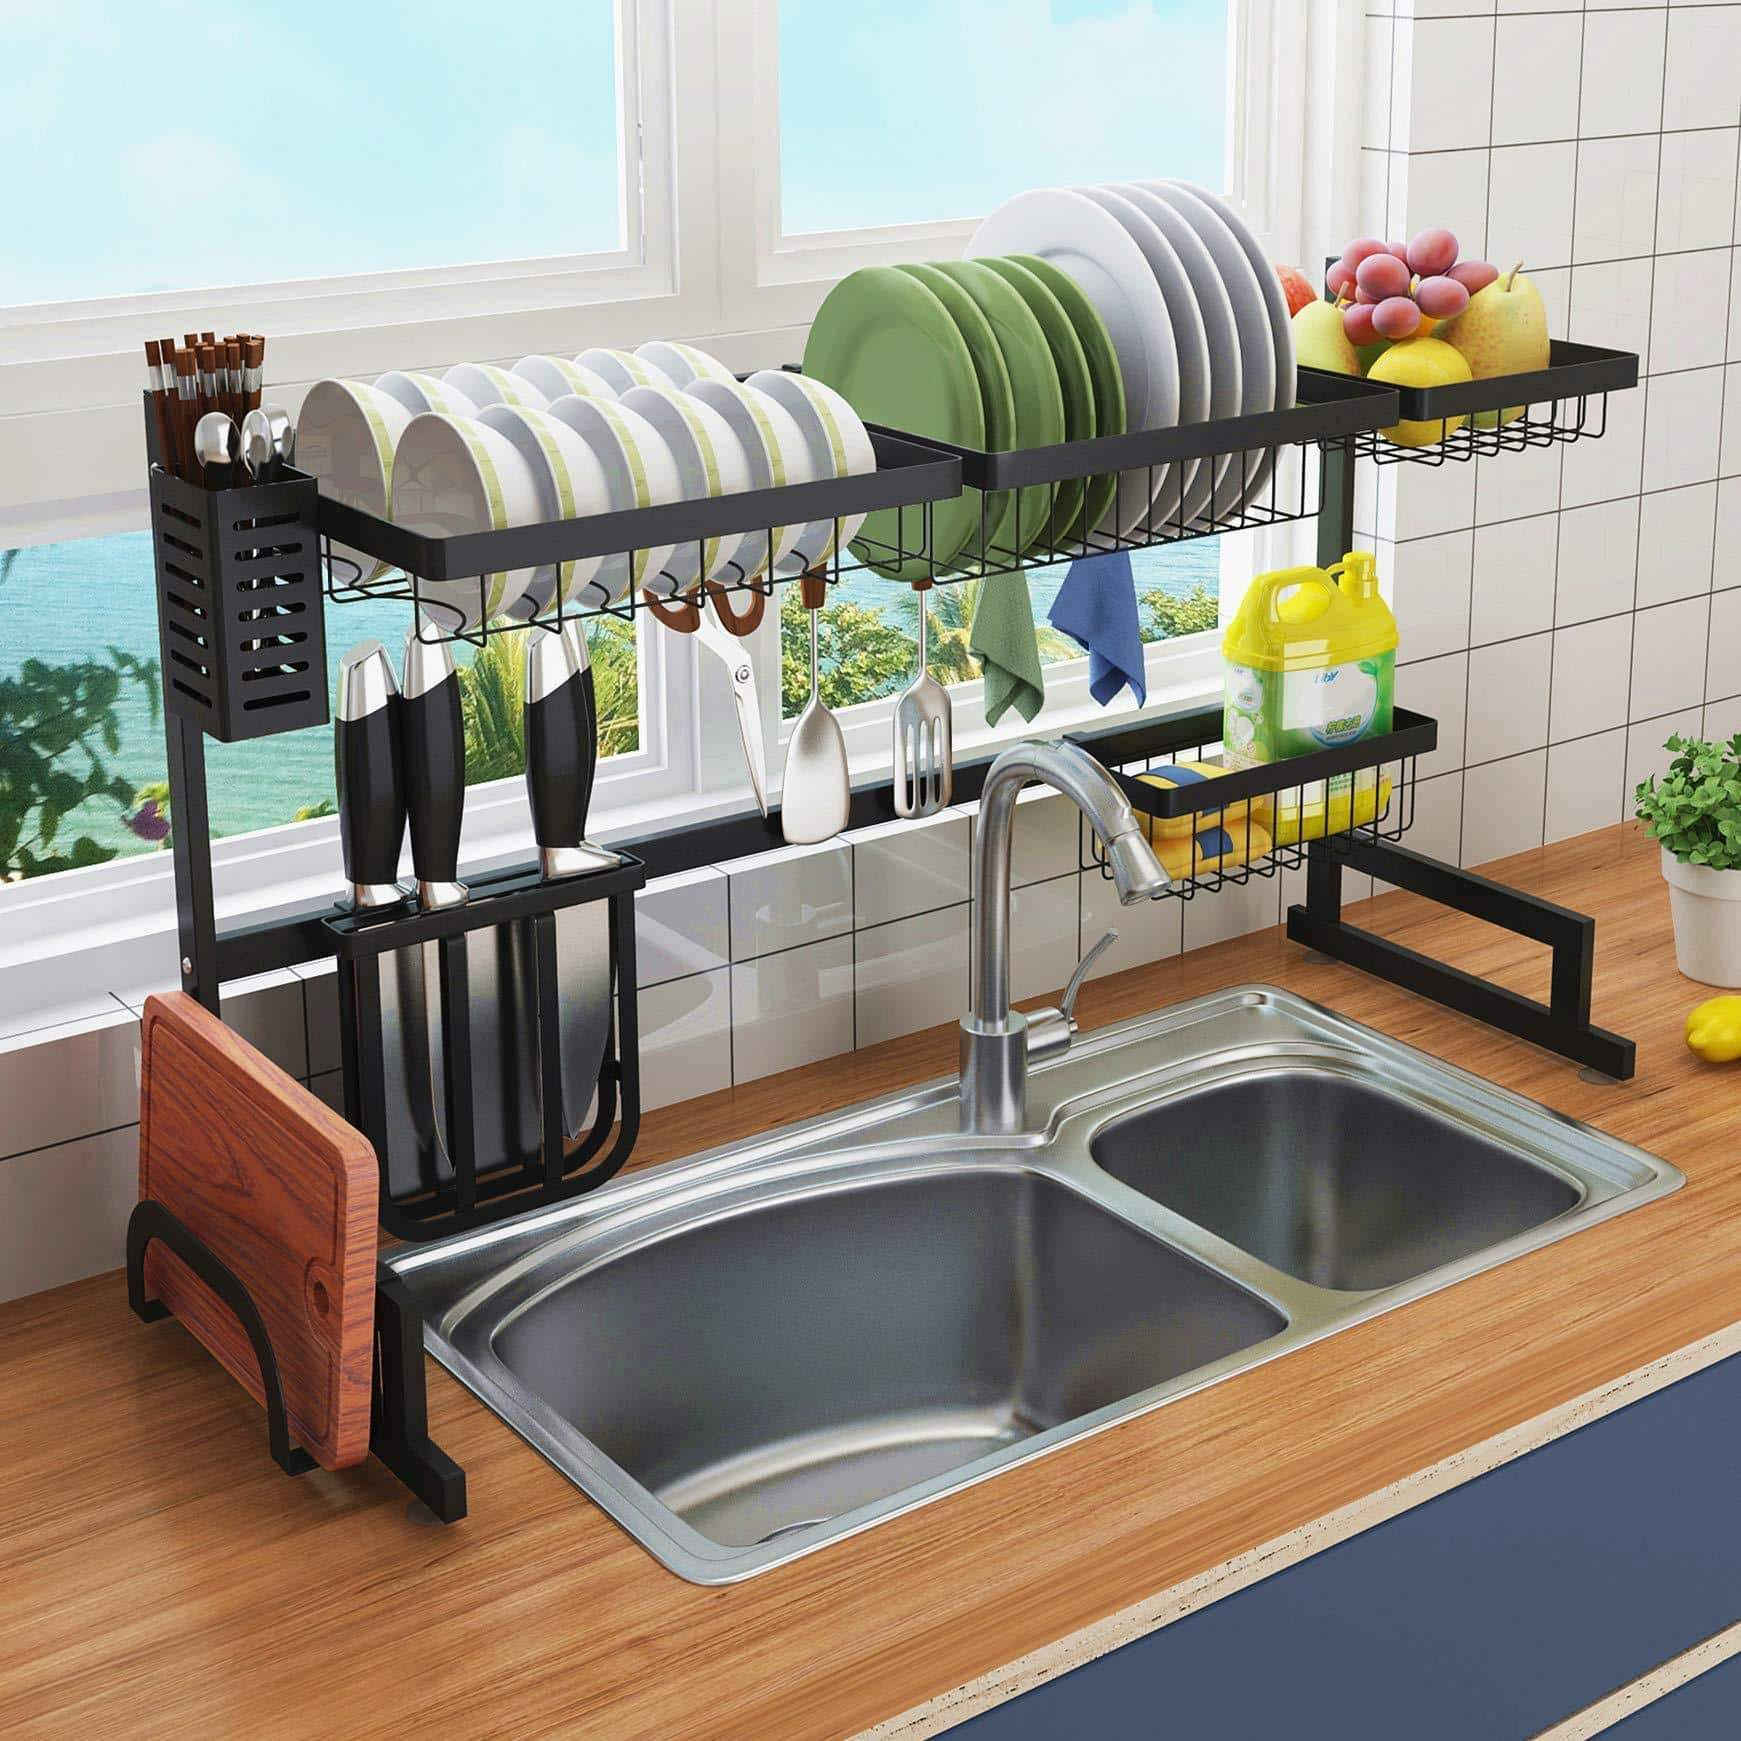 Over the Sink Dish Drying Rack - 2 Tier Large 18/8 Stainless Steel Drainer Display Shelf,Kitchen Supplies Storage Accessories Countertop Space Saver Stand Tableware Organizer with Utensil Holder